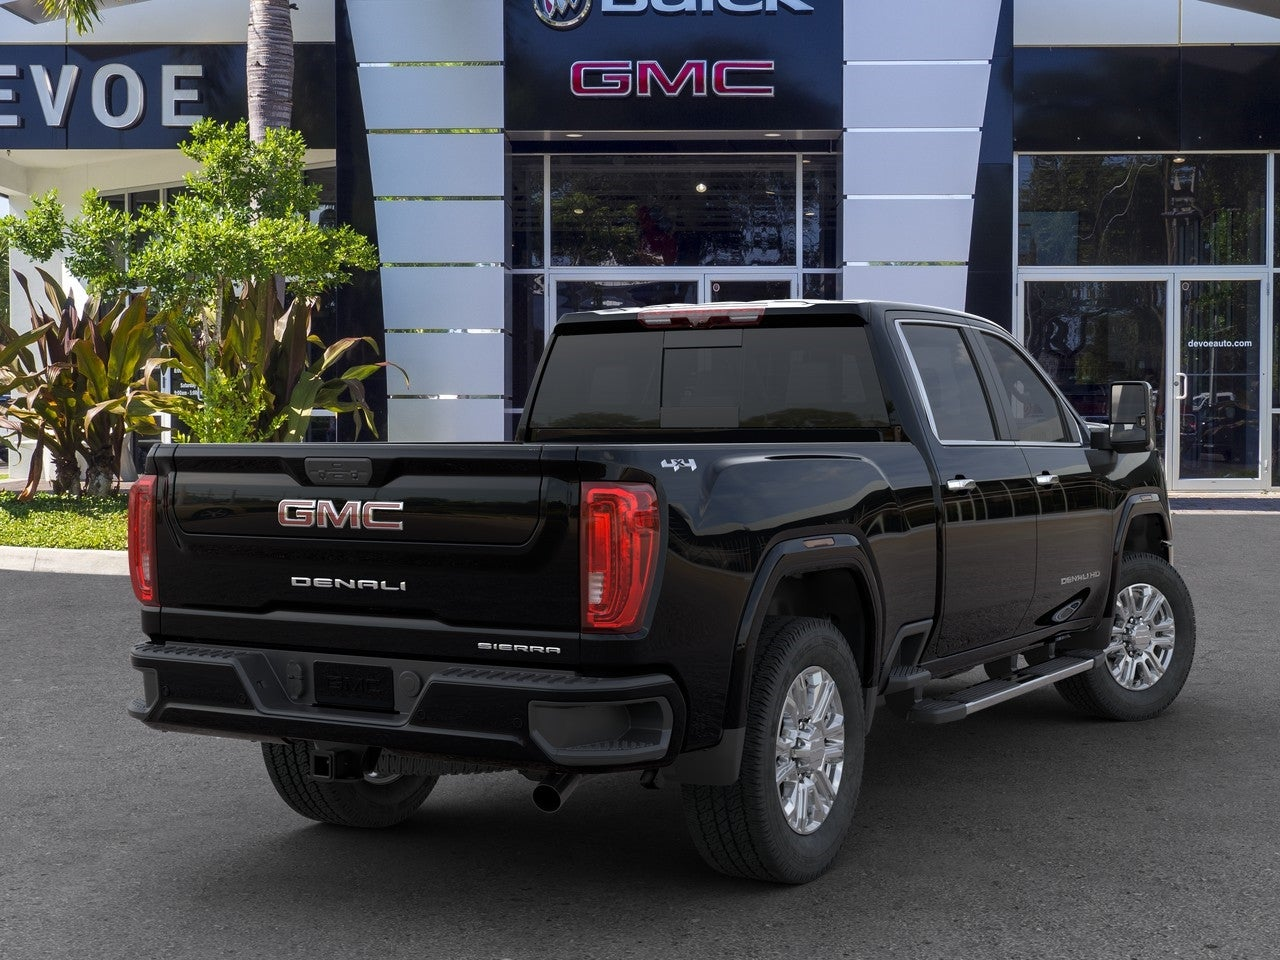 2020 GMC Sierra 2500 Crew Cab 4x4, Pickup #T20450 - photo 17